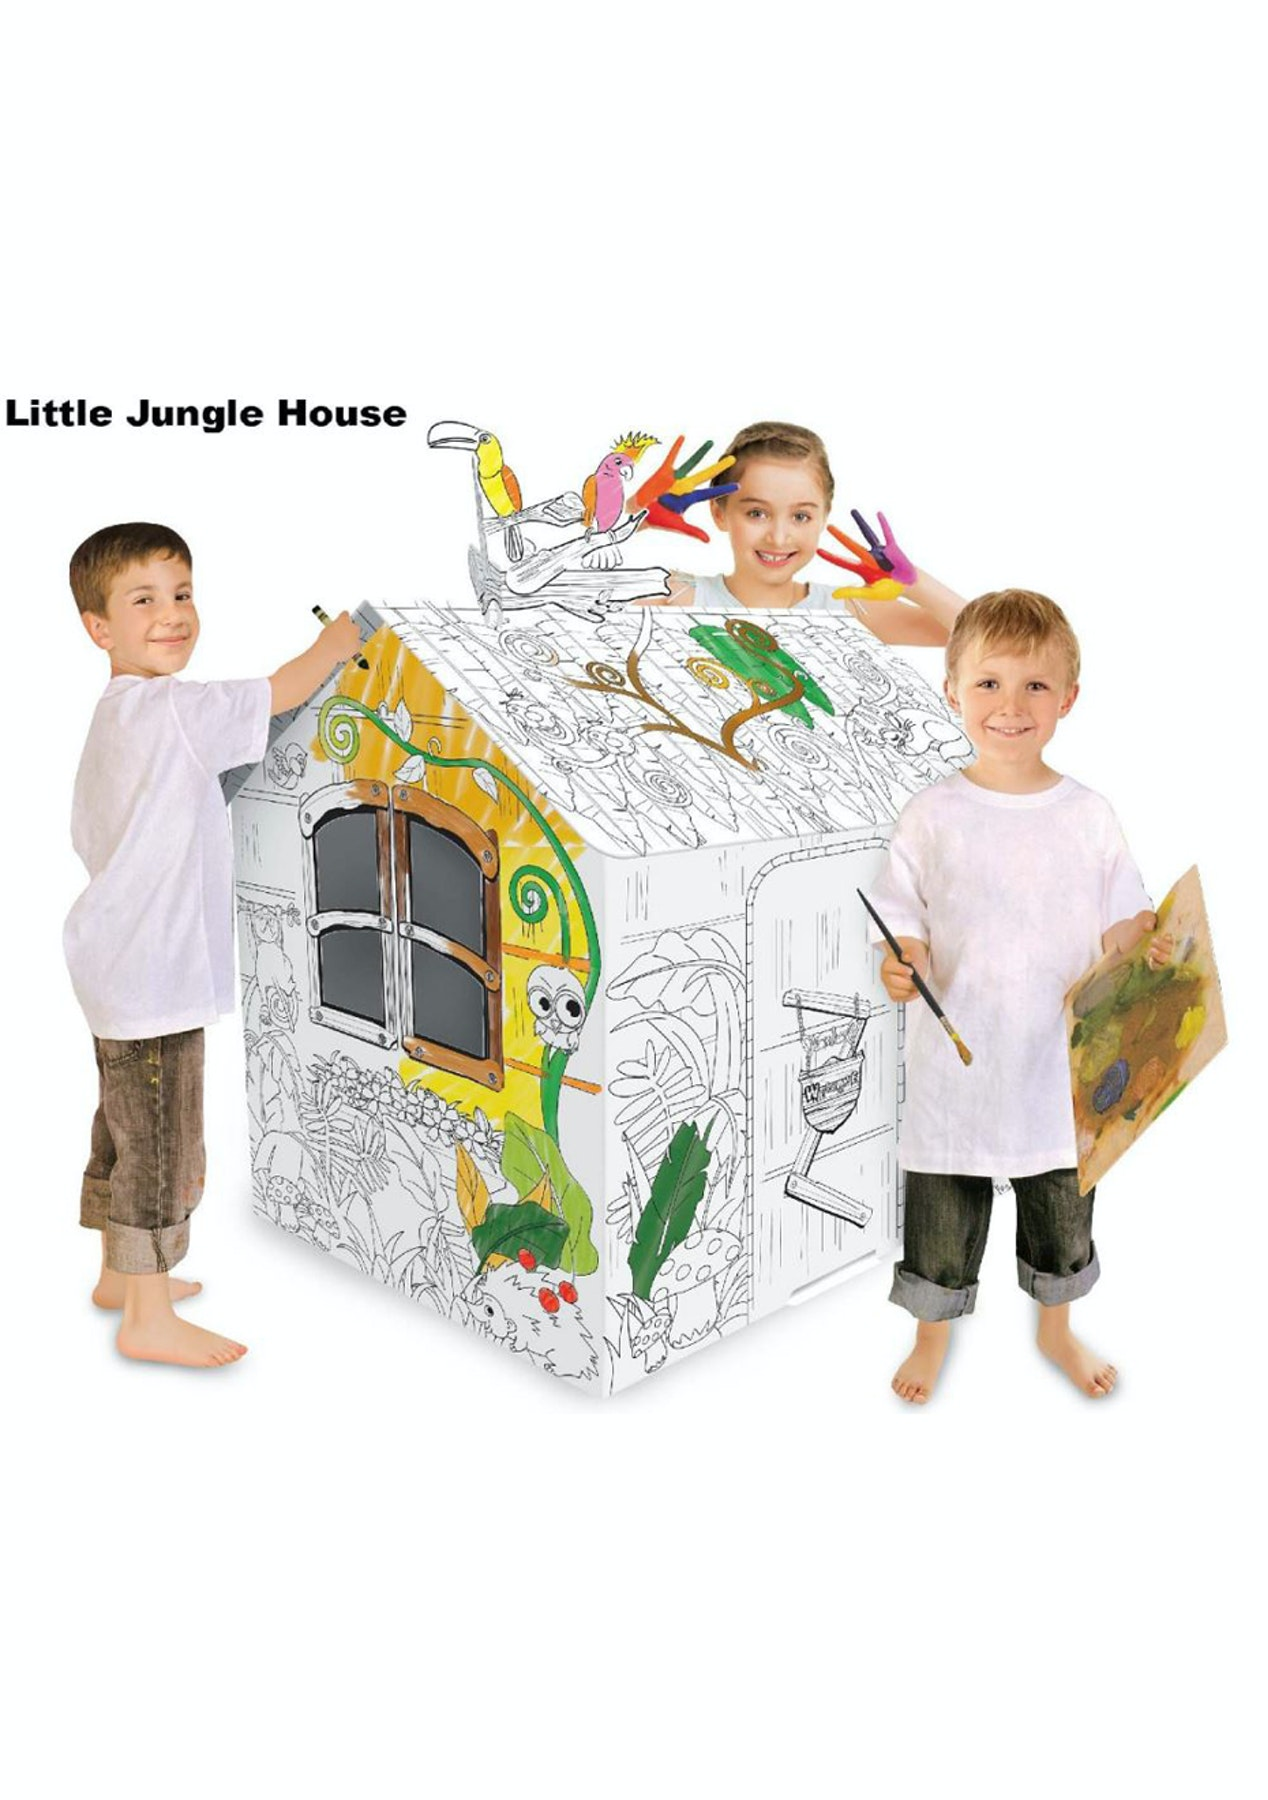 Coloring Cardboard Playhouse - Little Jungle House - Kids Holiday ...